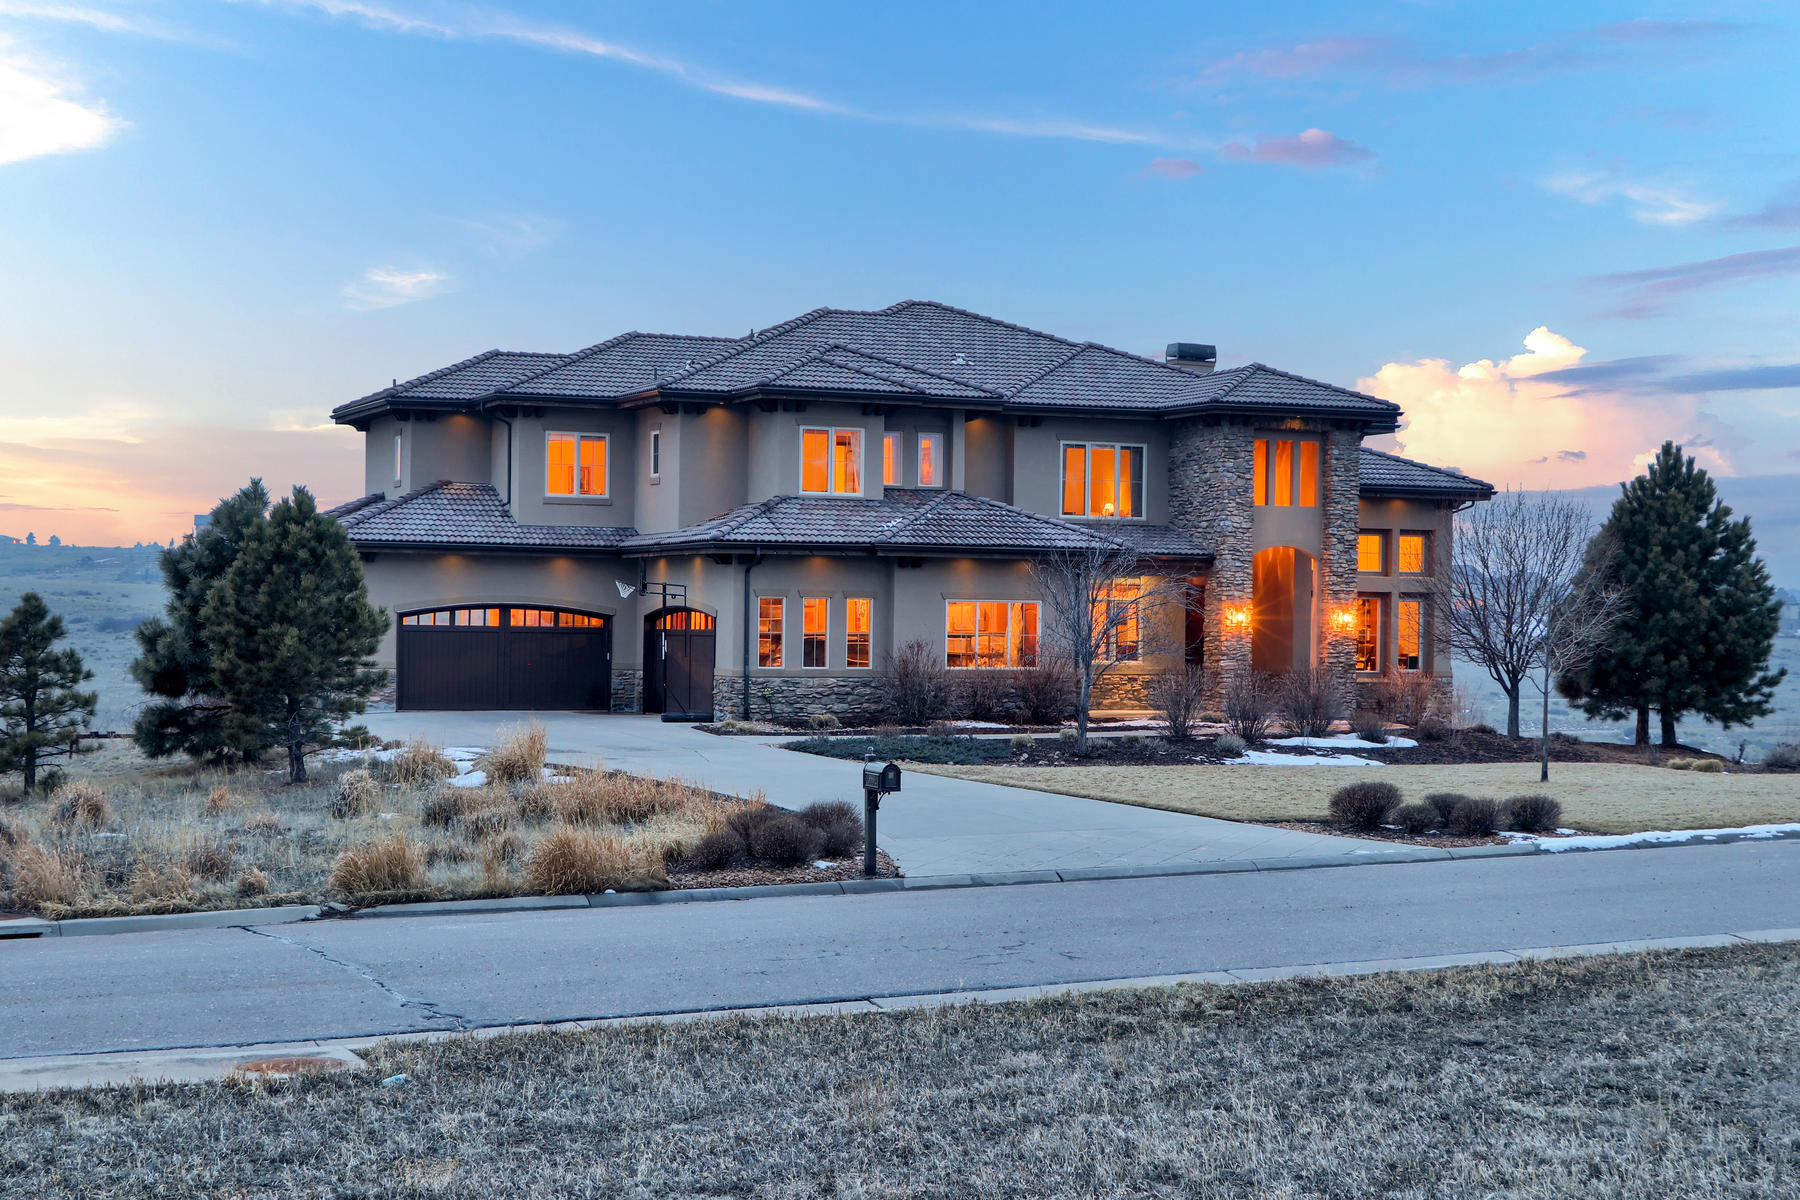 Single Family Homes for Sale at The Home You've Longed For 9863 Sara Gulch Cir Parker, Colorado 80138 United States